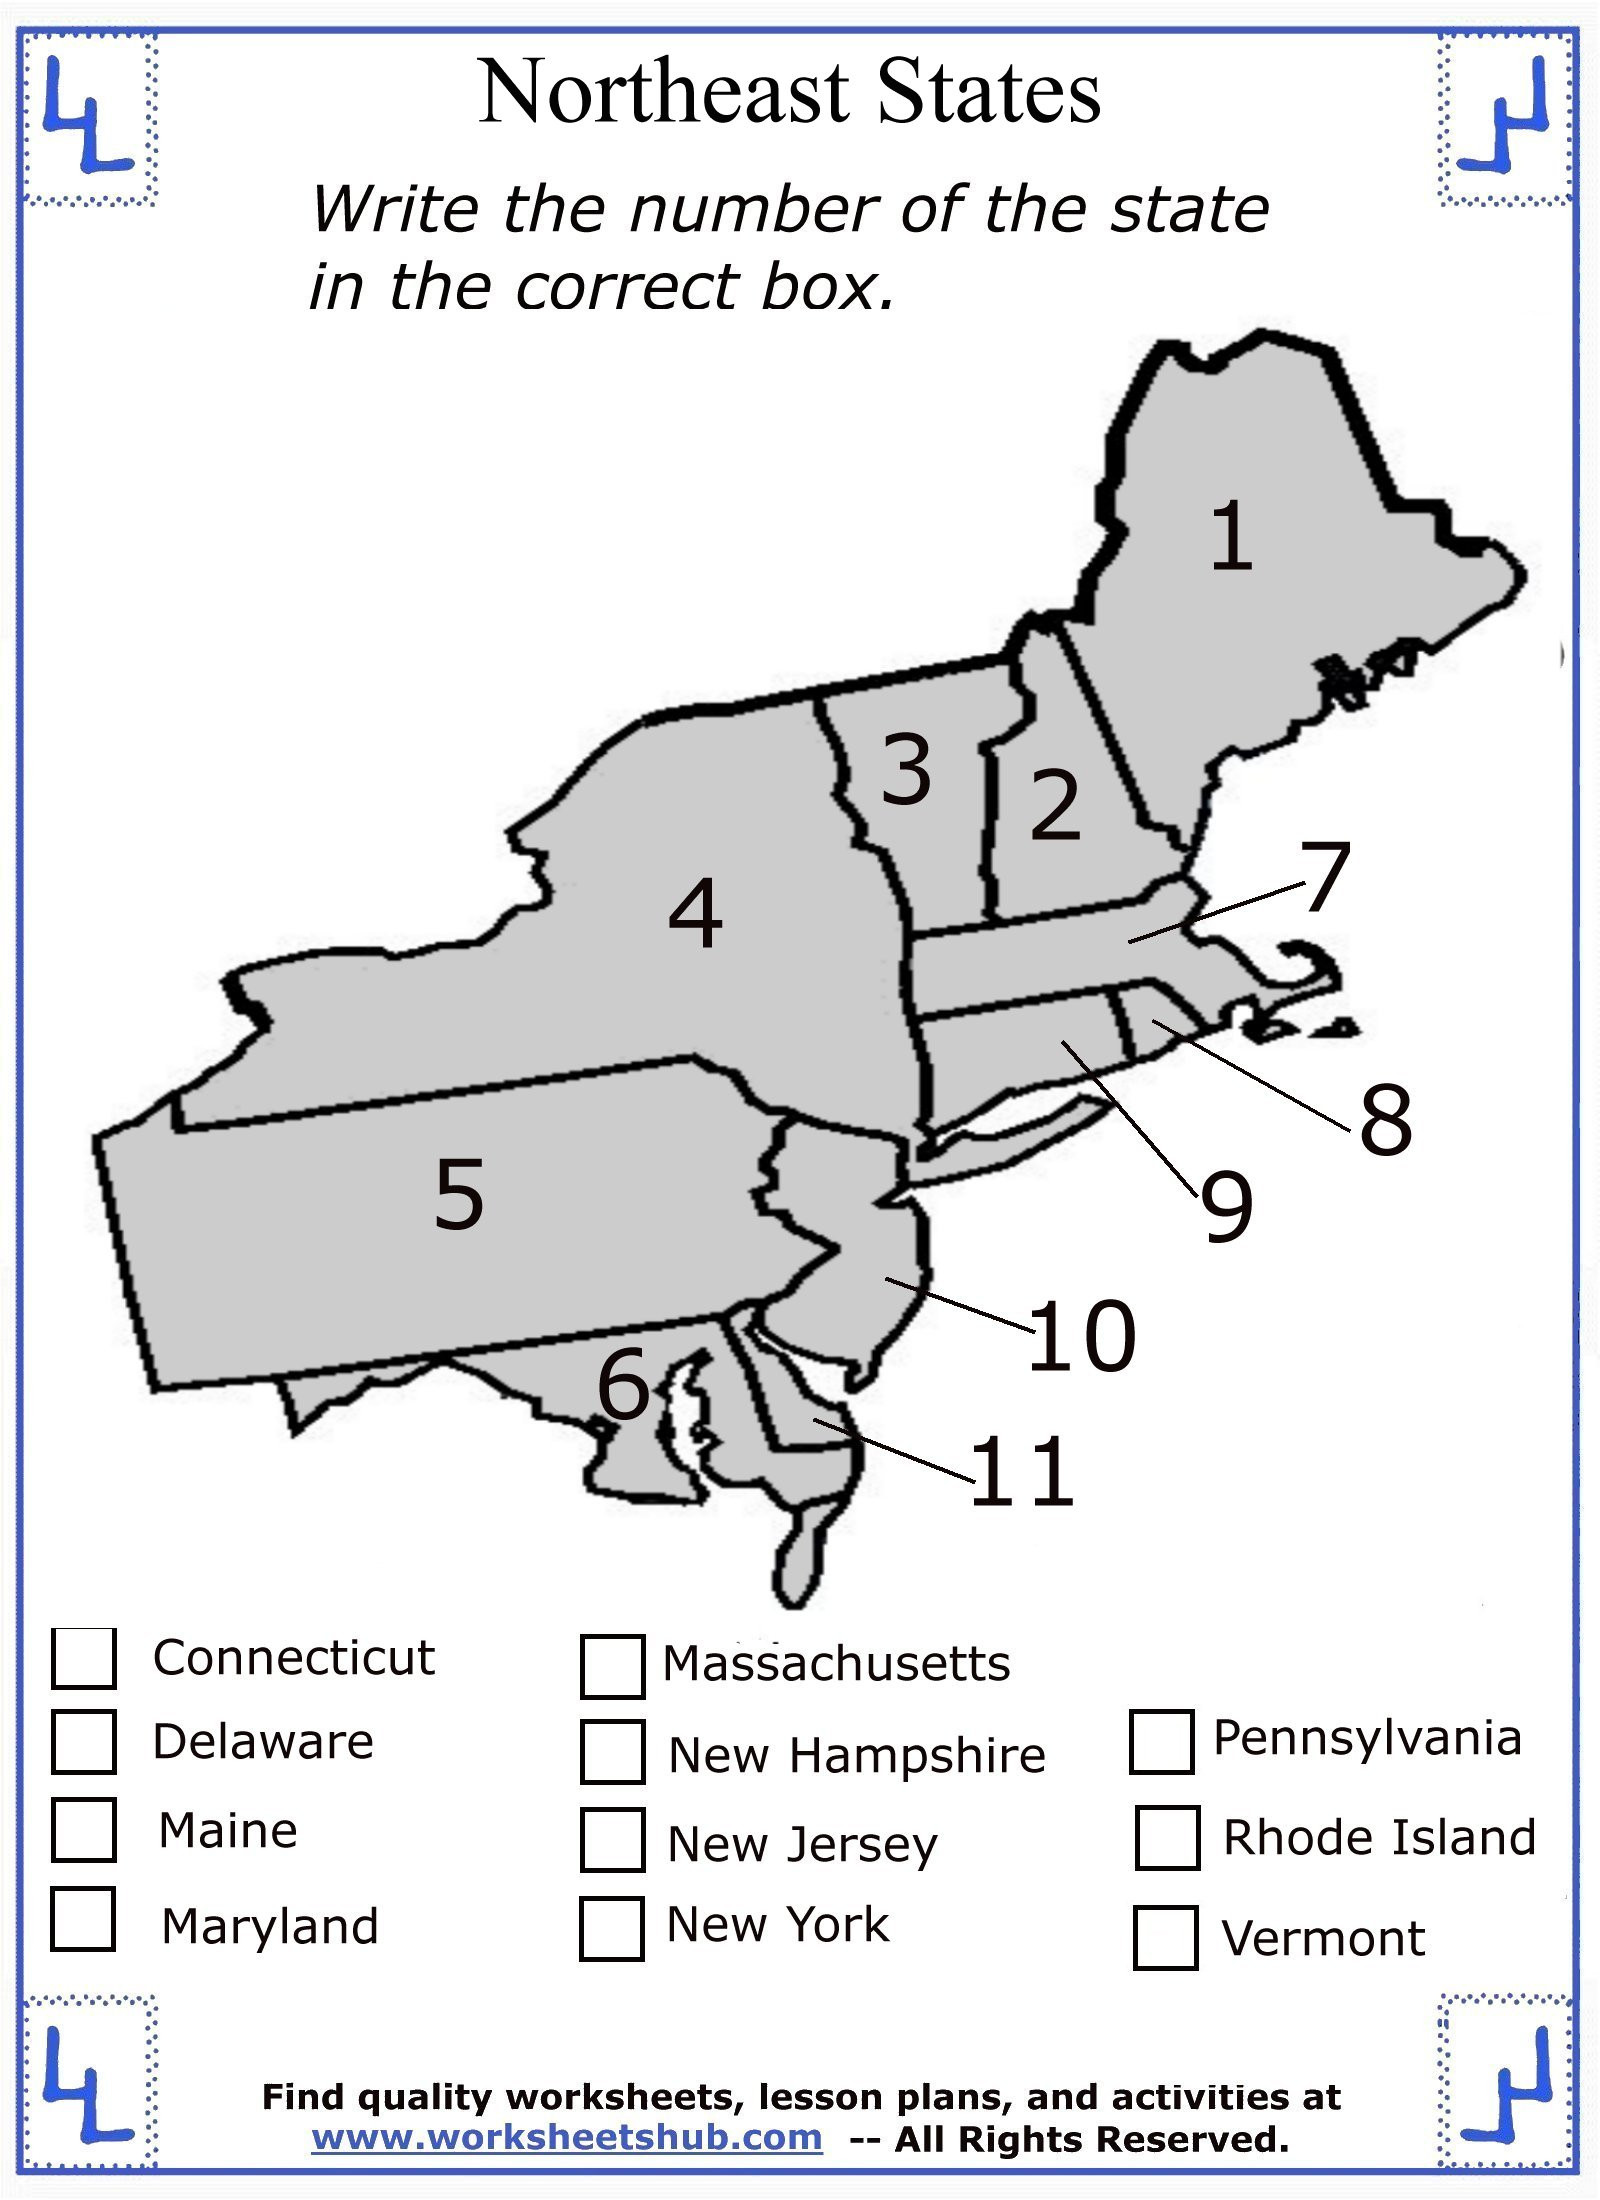 Northeast States and Capitals Worksheet